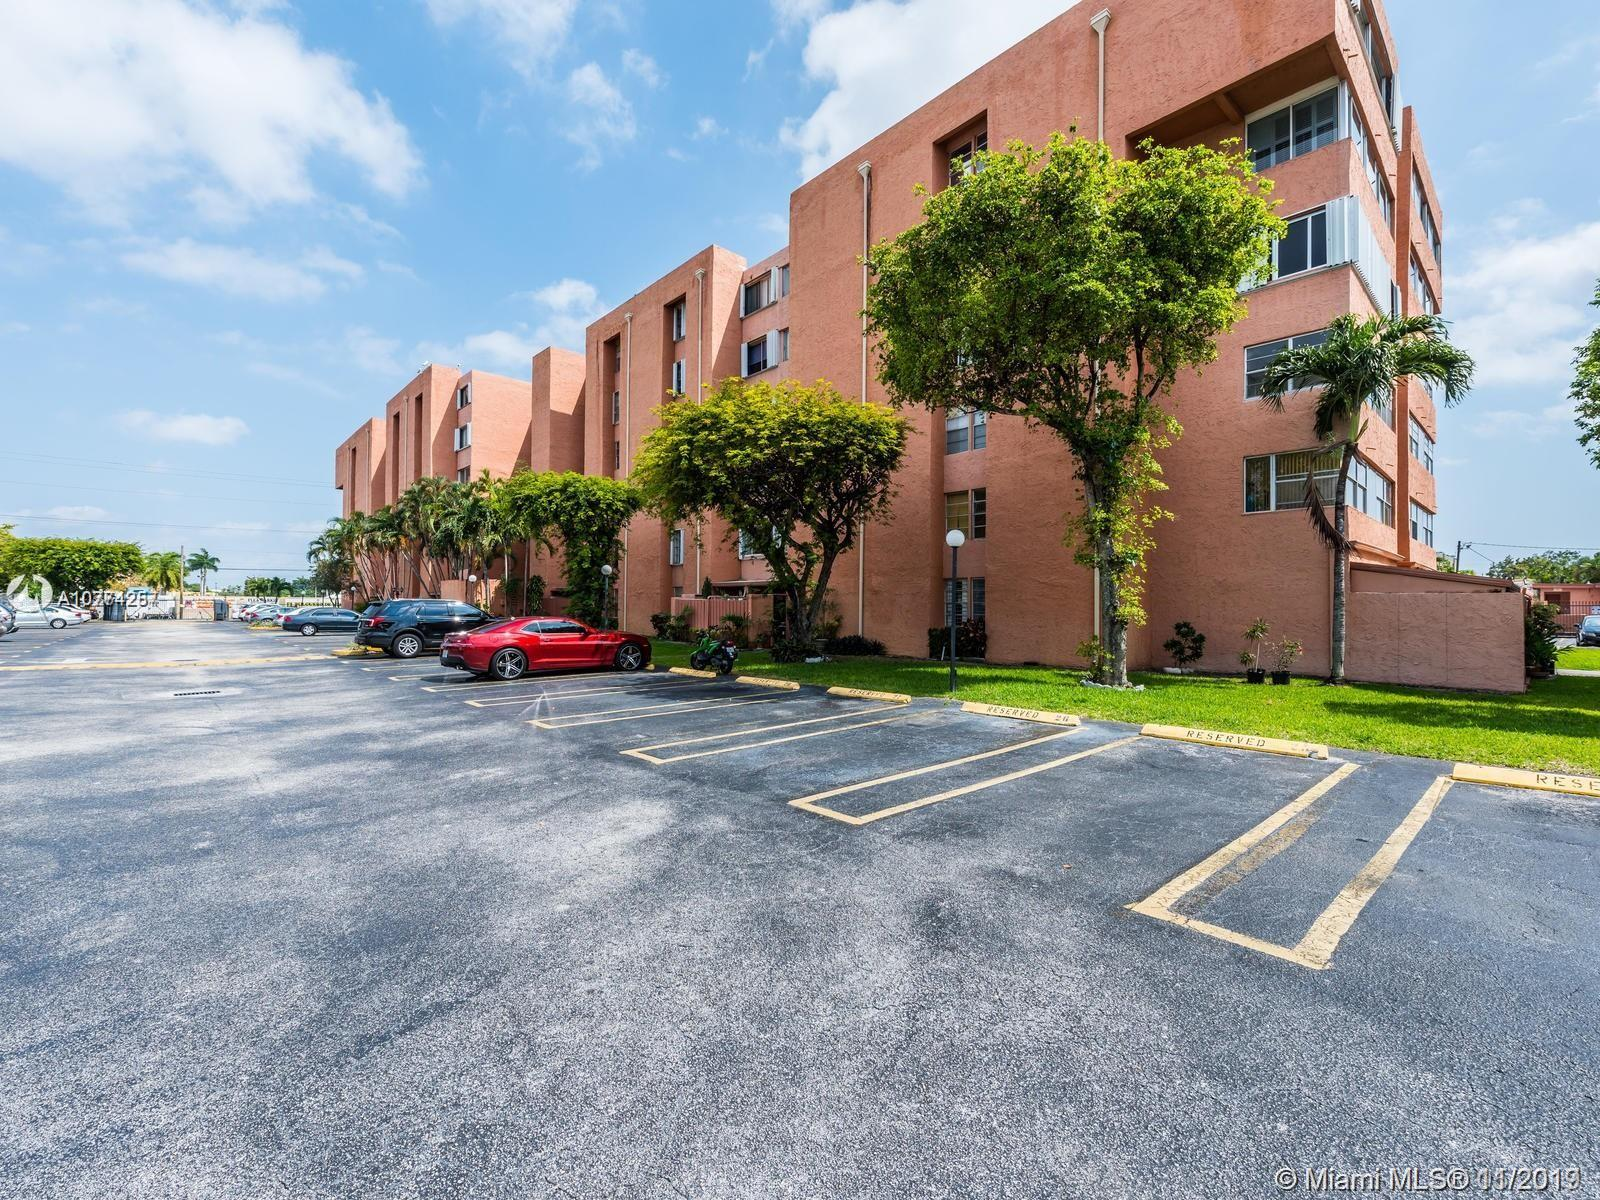 ****CASH ONLY****SOLD AS-IS****This 2 bed 1 bath condo has a completely tiled living area, an enclosed balcony for extra living space, and 1 assigned gated parking space. It is a well-maintained building with a pool facility. This condo is located in a very central location of Miami, close to the airport, and major roadways which gives easy access to the downtown area, Coral Gables, and Coconut Grove. Not only that but it is at walking distance to shopping centers, banks, restaurants and movie theater. It can be rented right away; great for investors.